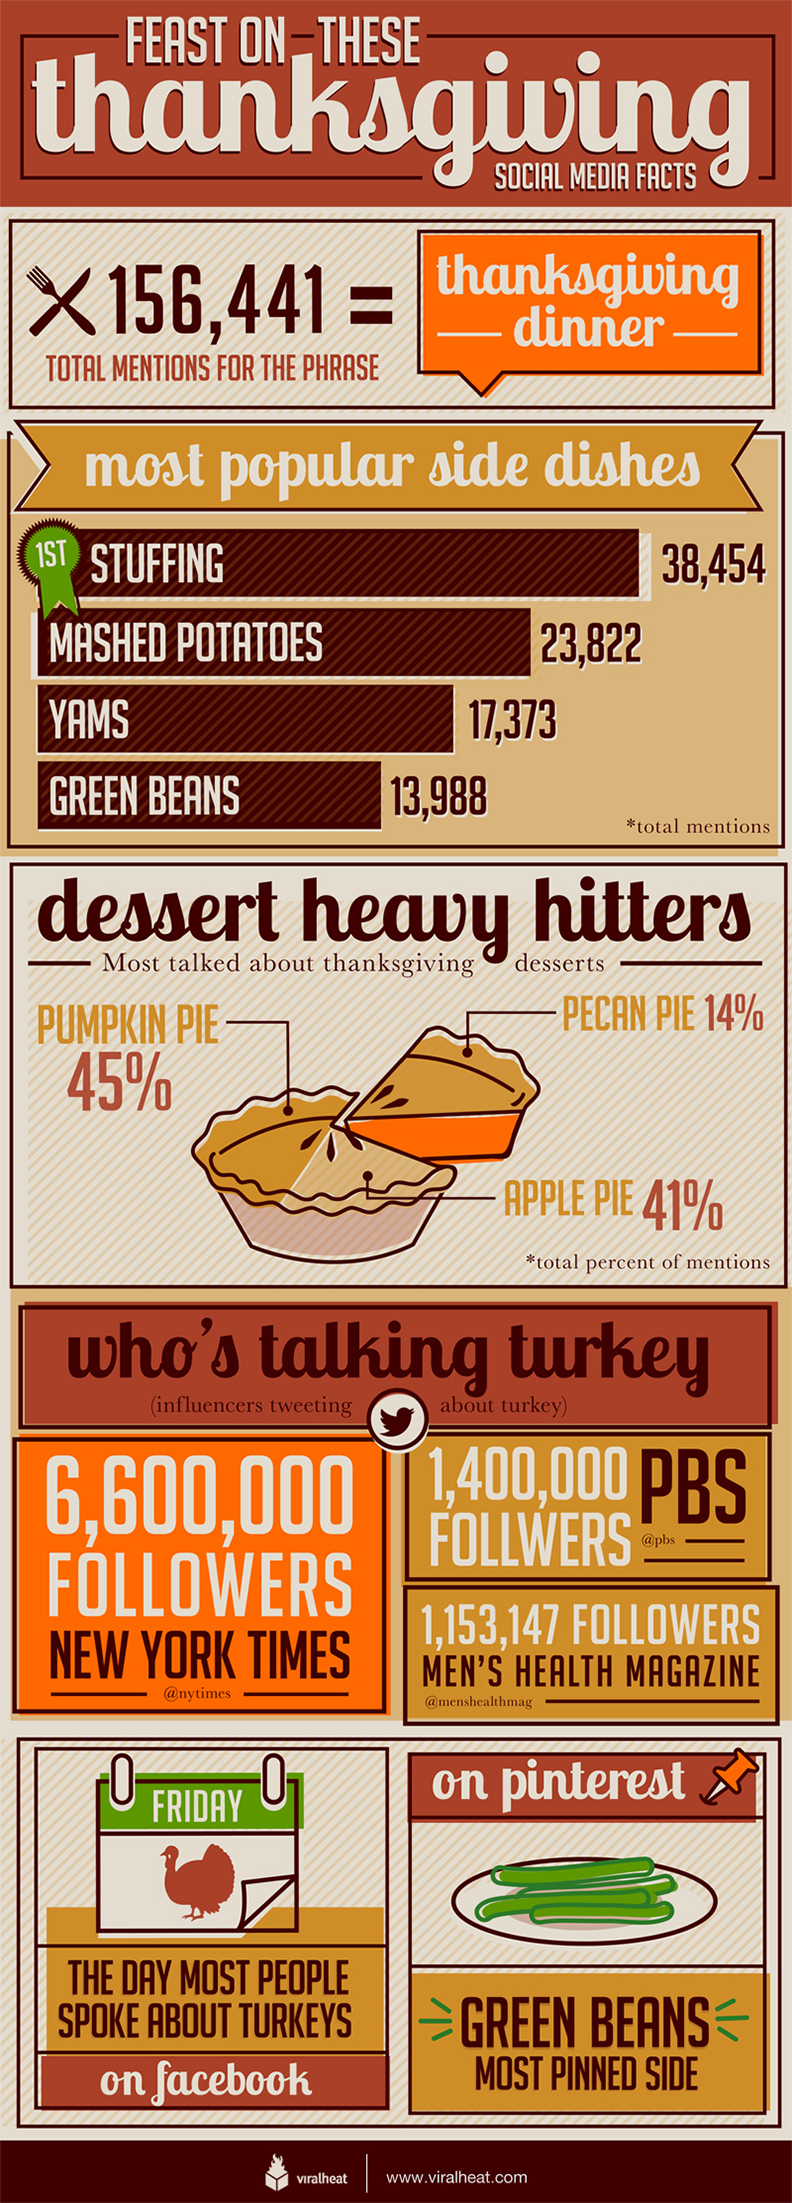 feast-of-these-thanksgiving-social-media-facts_50b3a4c0cc505